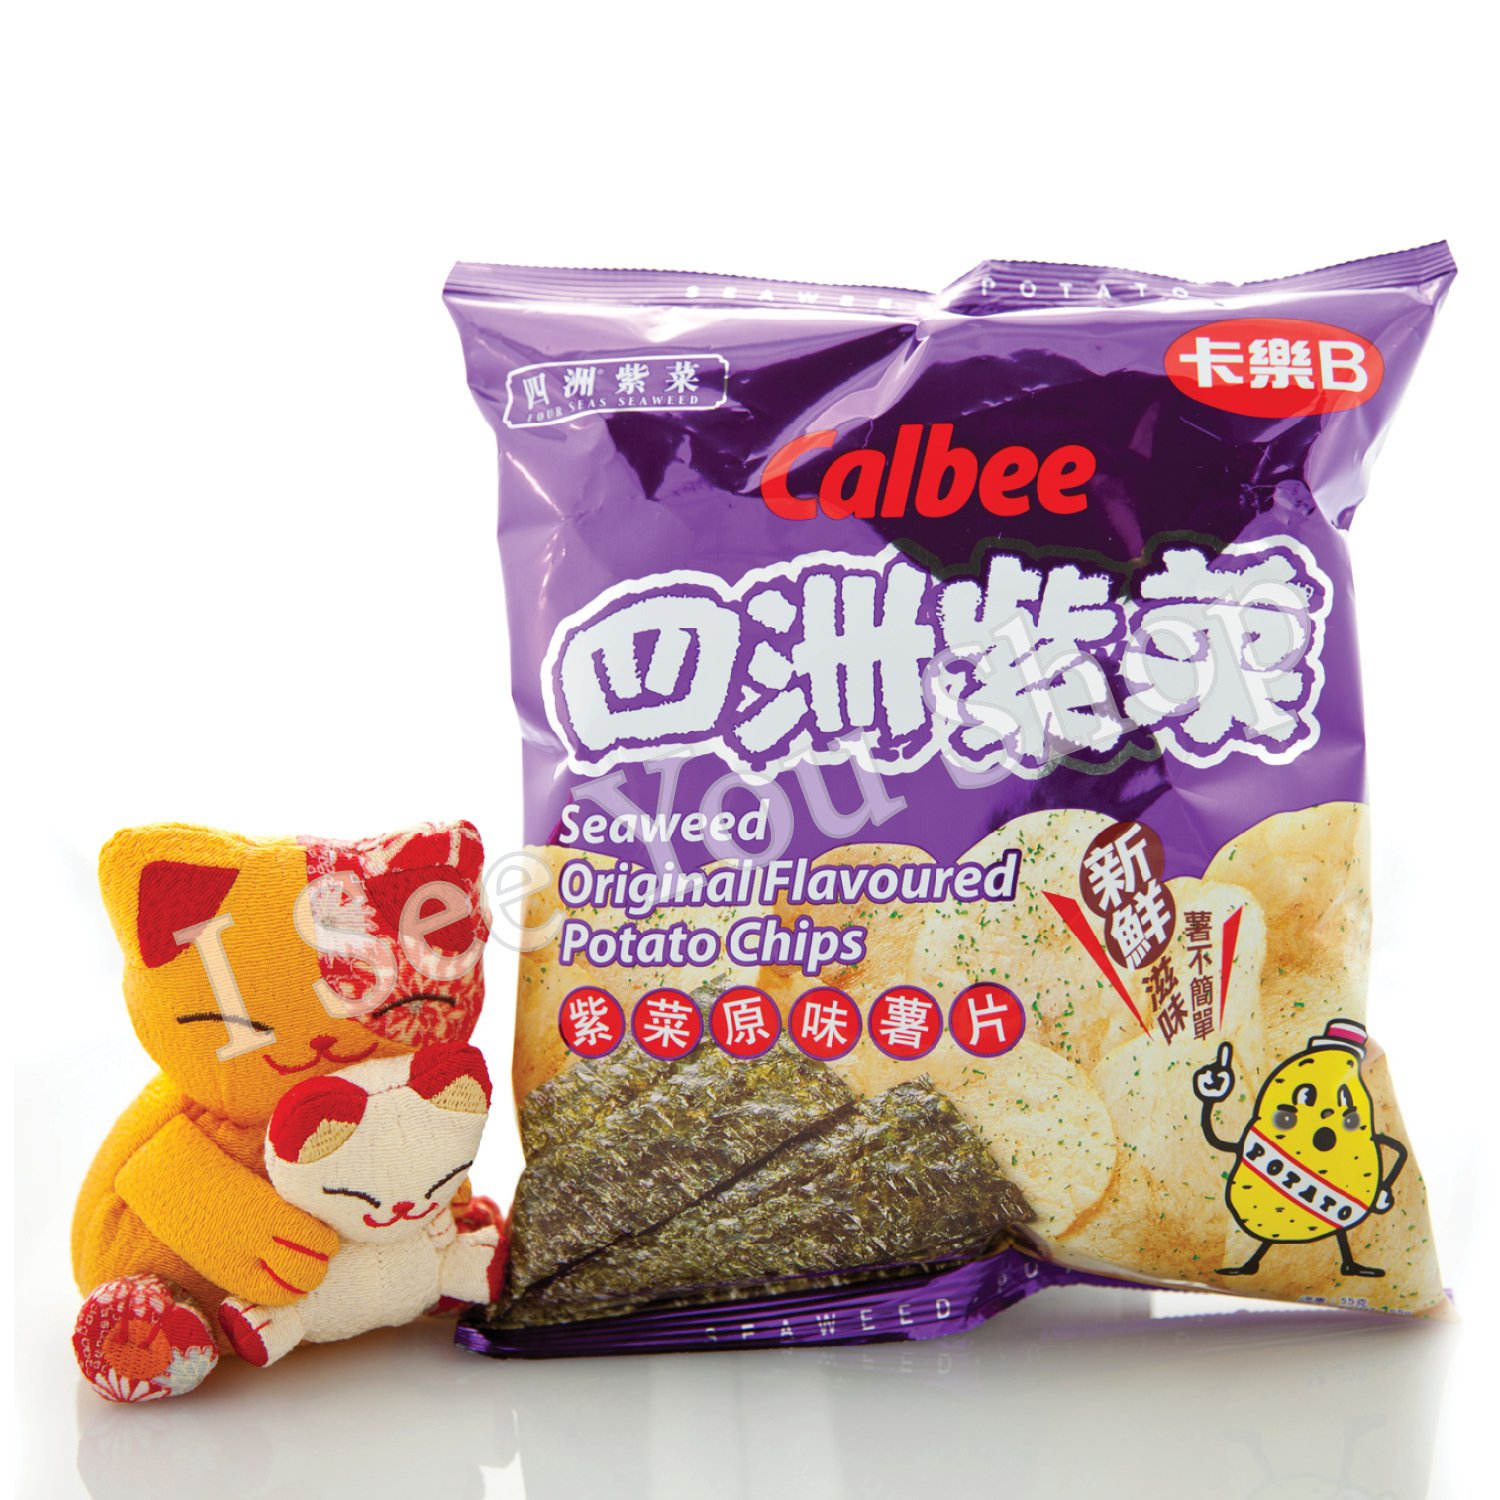 ��B �洲紫���� Calbee Four Seas Seaweed Original Flavored Chips 55G